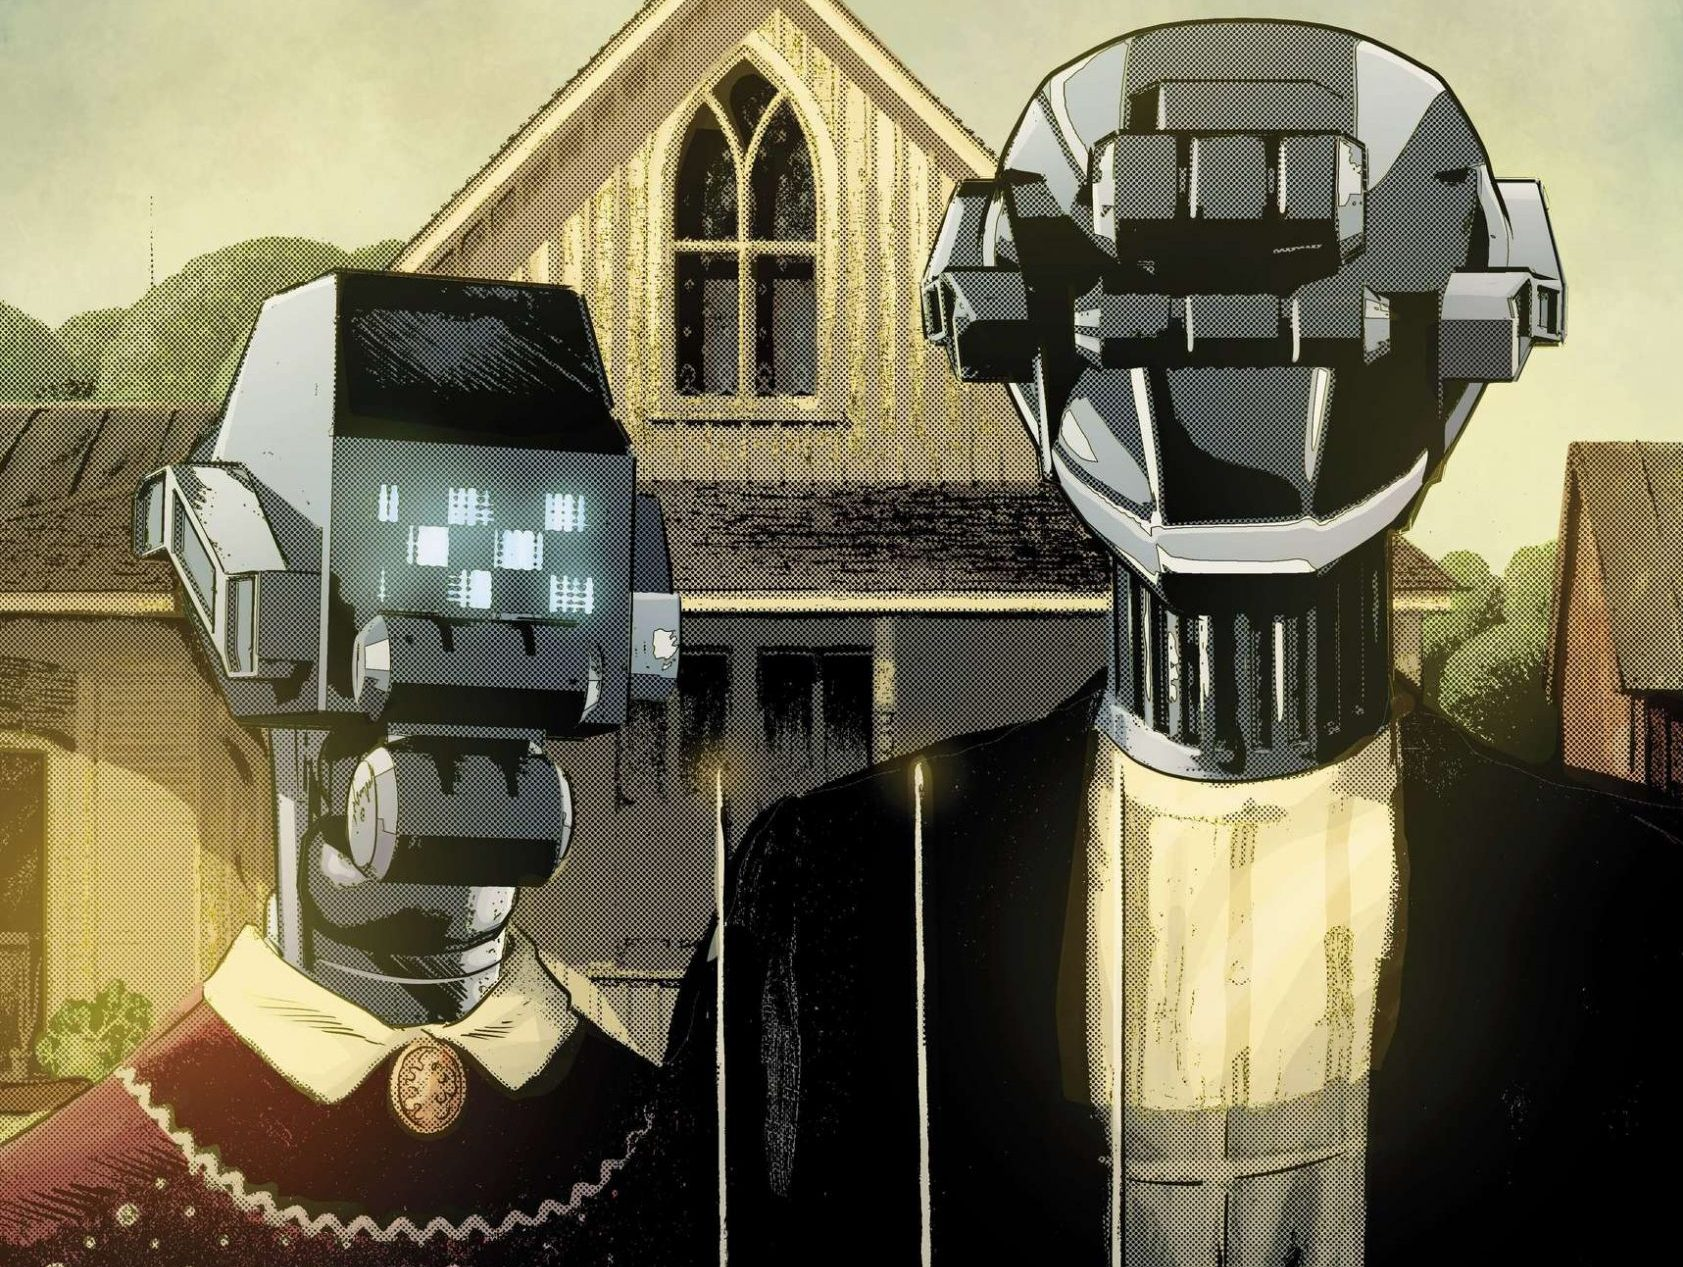 'Not All Robots' #1 review: Work sucks, iKnow